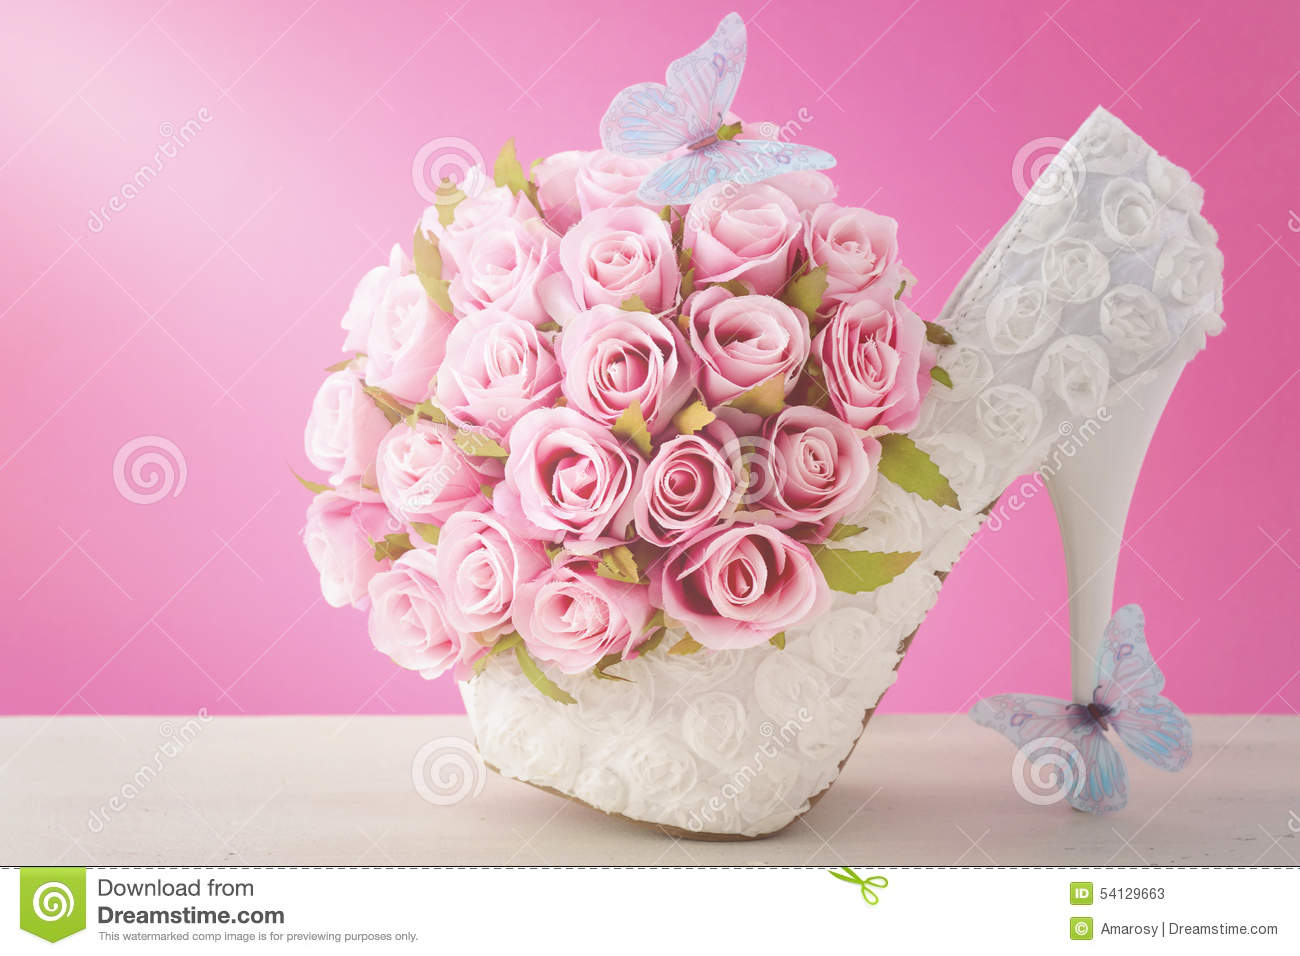 Pink And White Theme Wedding Bouquet Concept. Stock Image - Image of ...